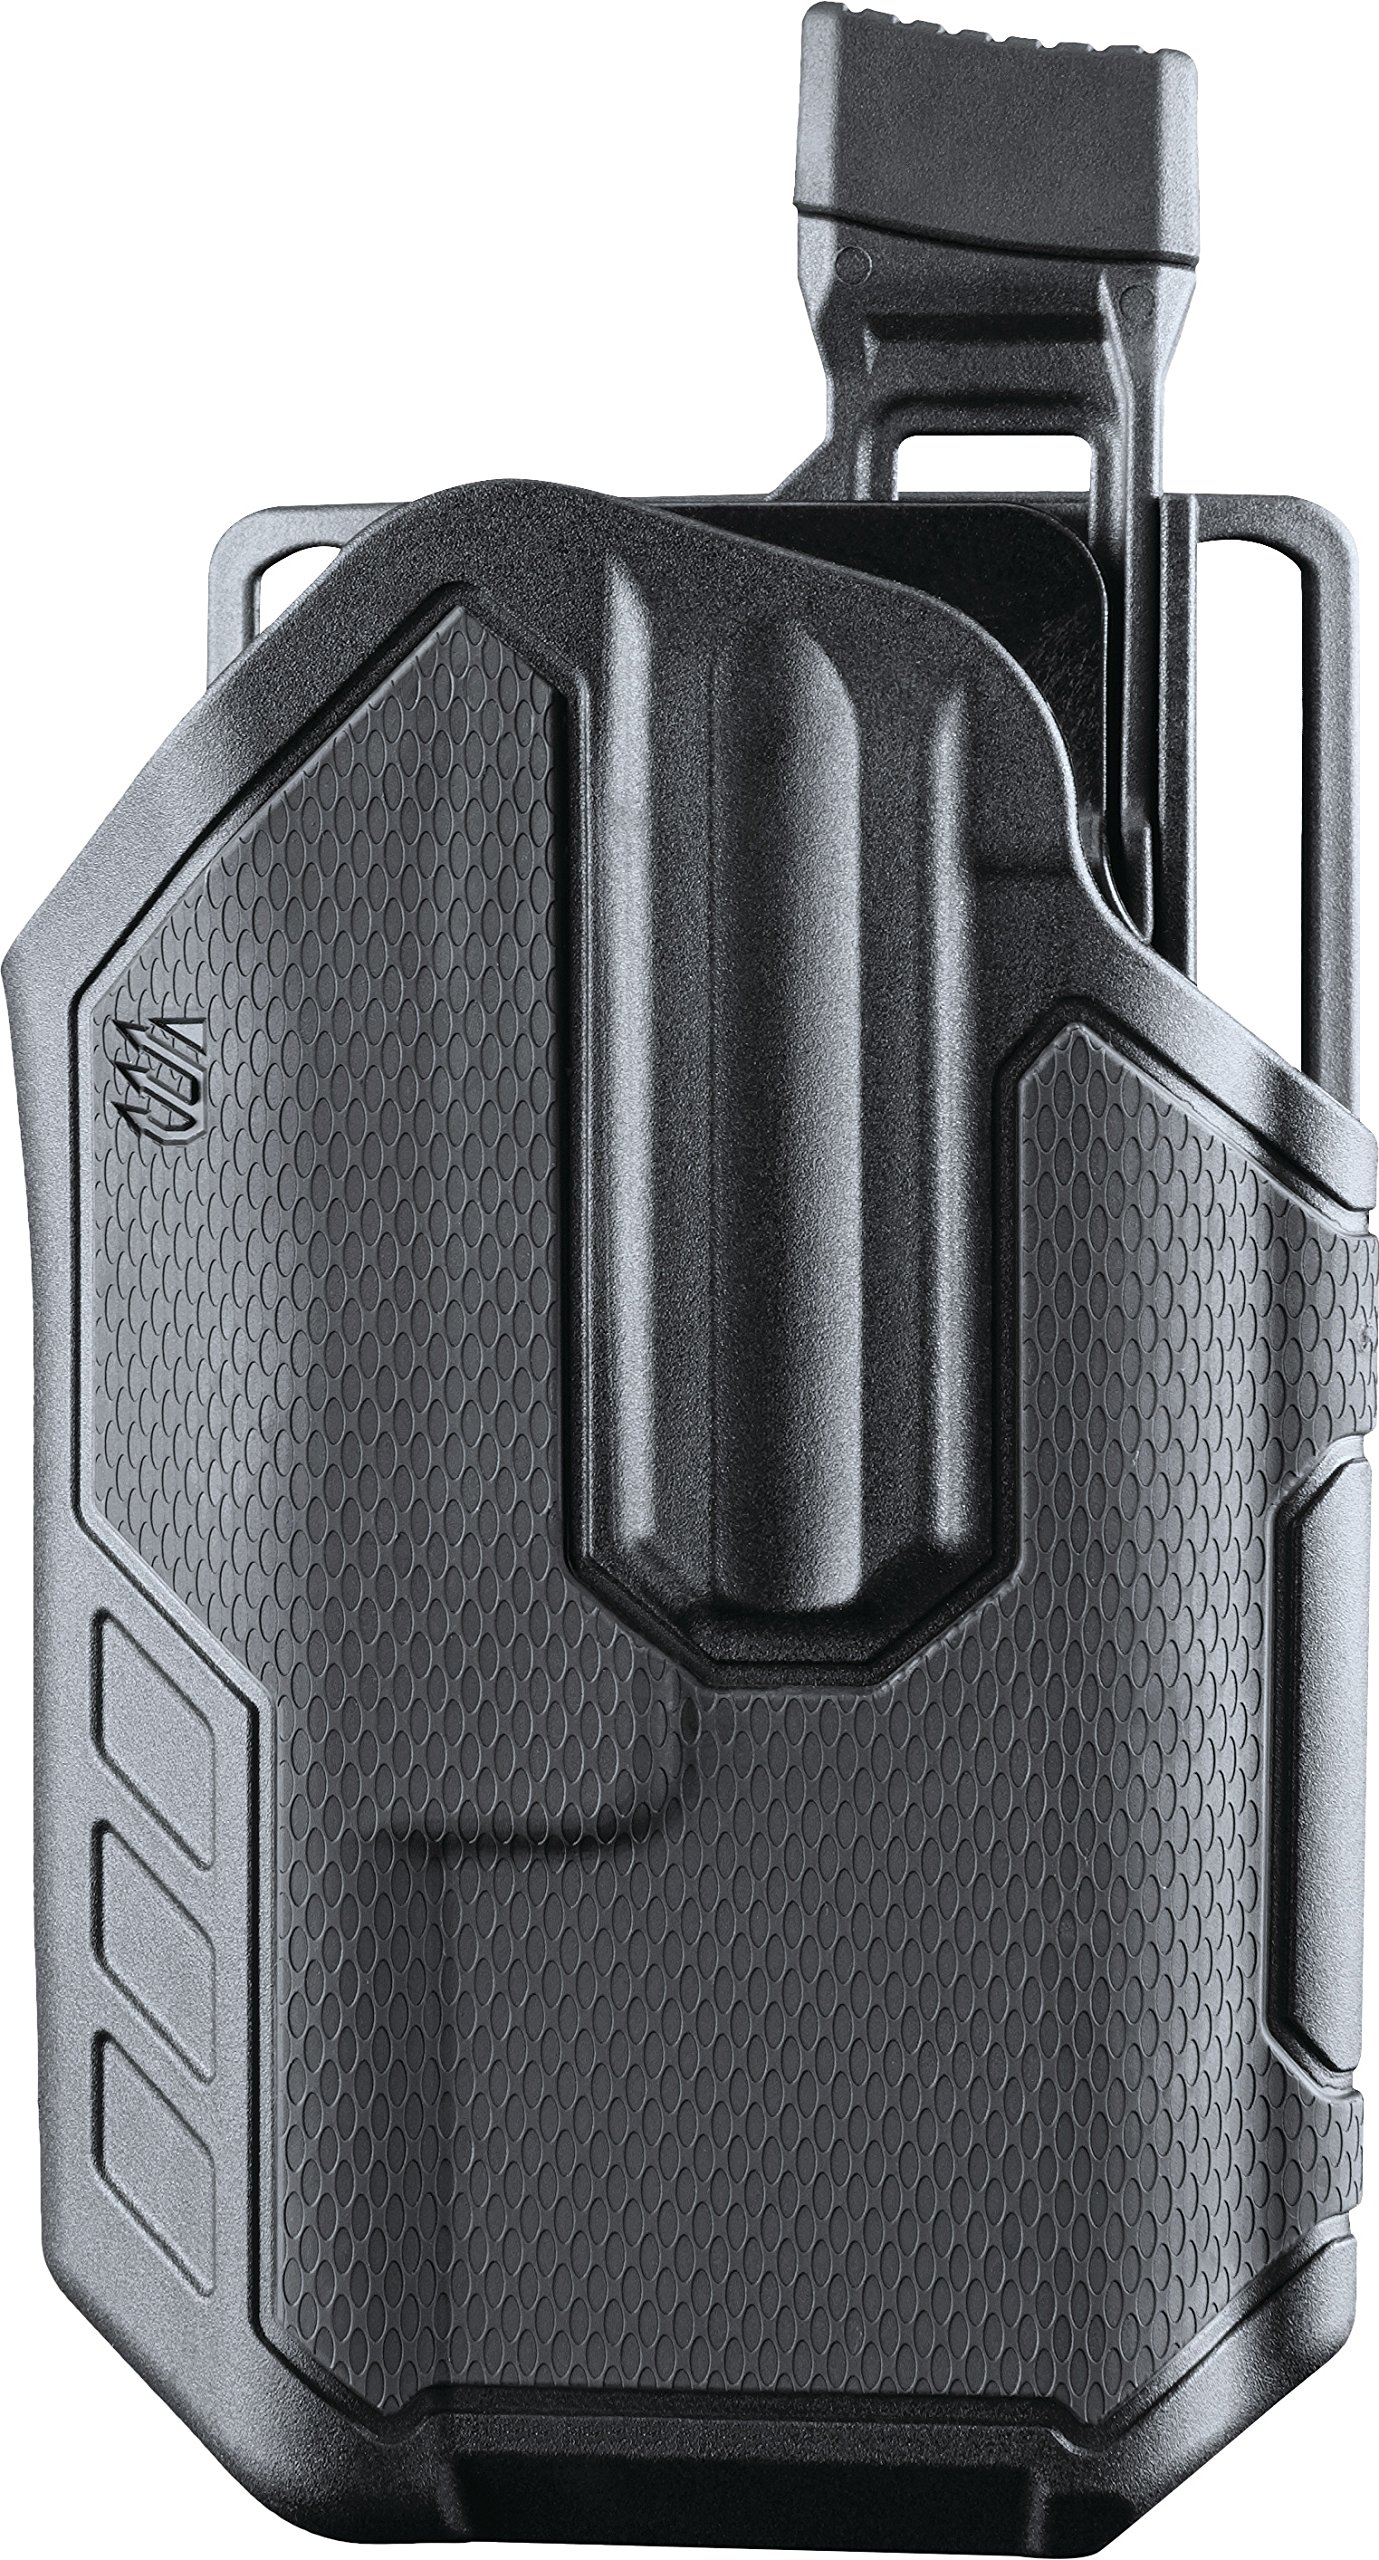 BLACKHAWK! Omnivore SL TLR1/TLR2 419002BBR Belt Holster Level 2 Retention, Right by BLACKHAWK!